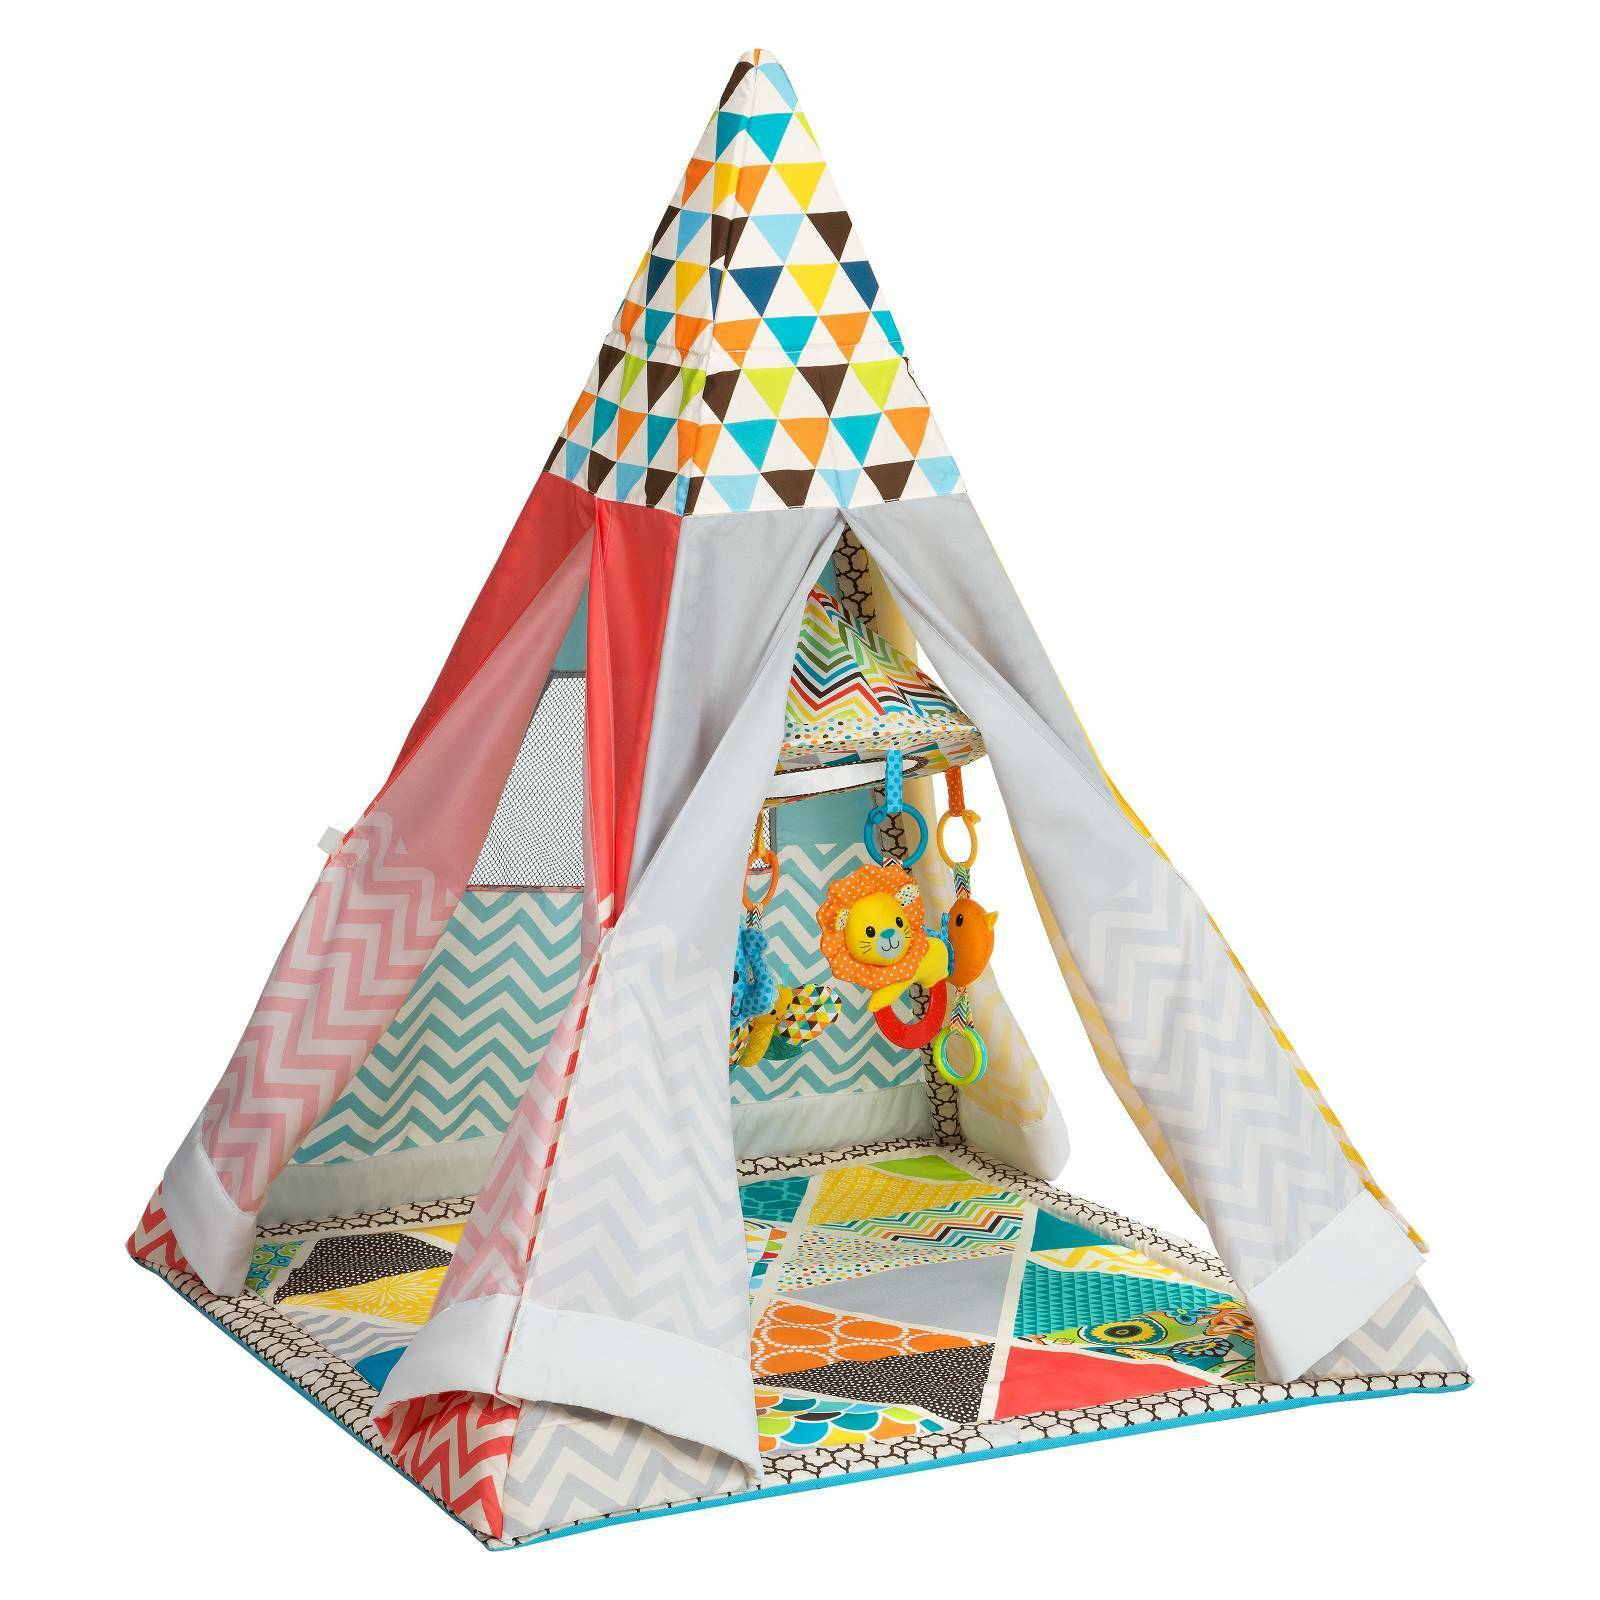 Model 2017 Infantino Go Gaga Infant to Toddler Play Gym Teepee for